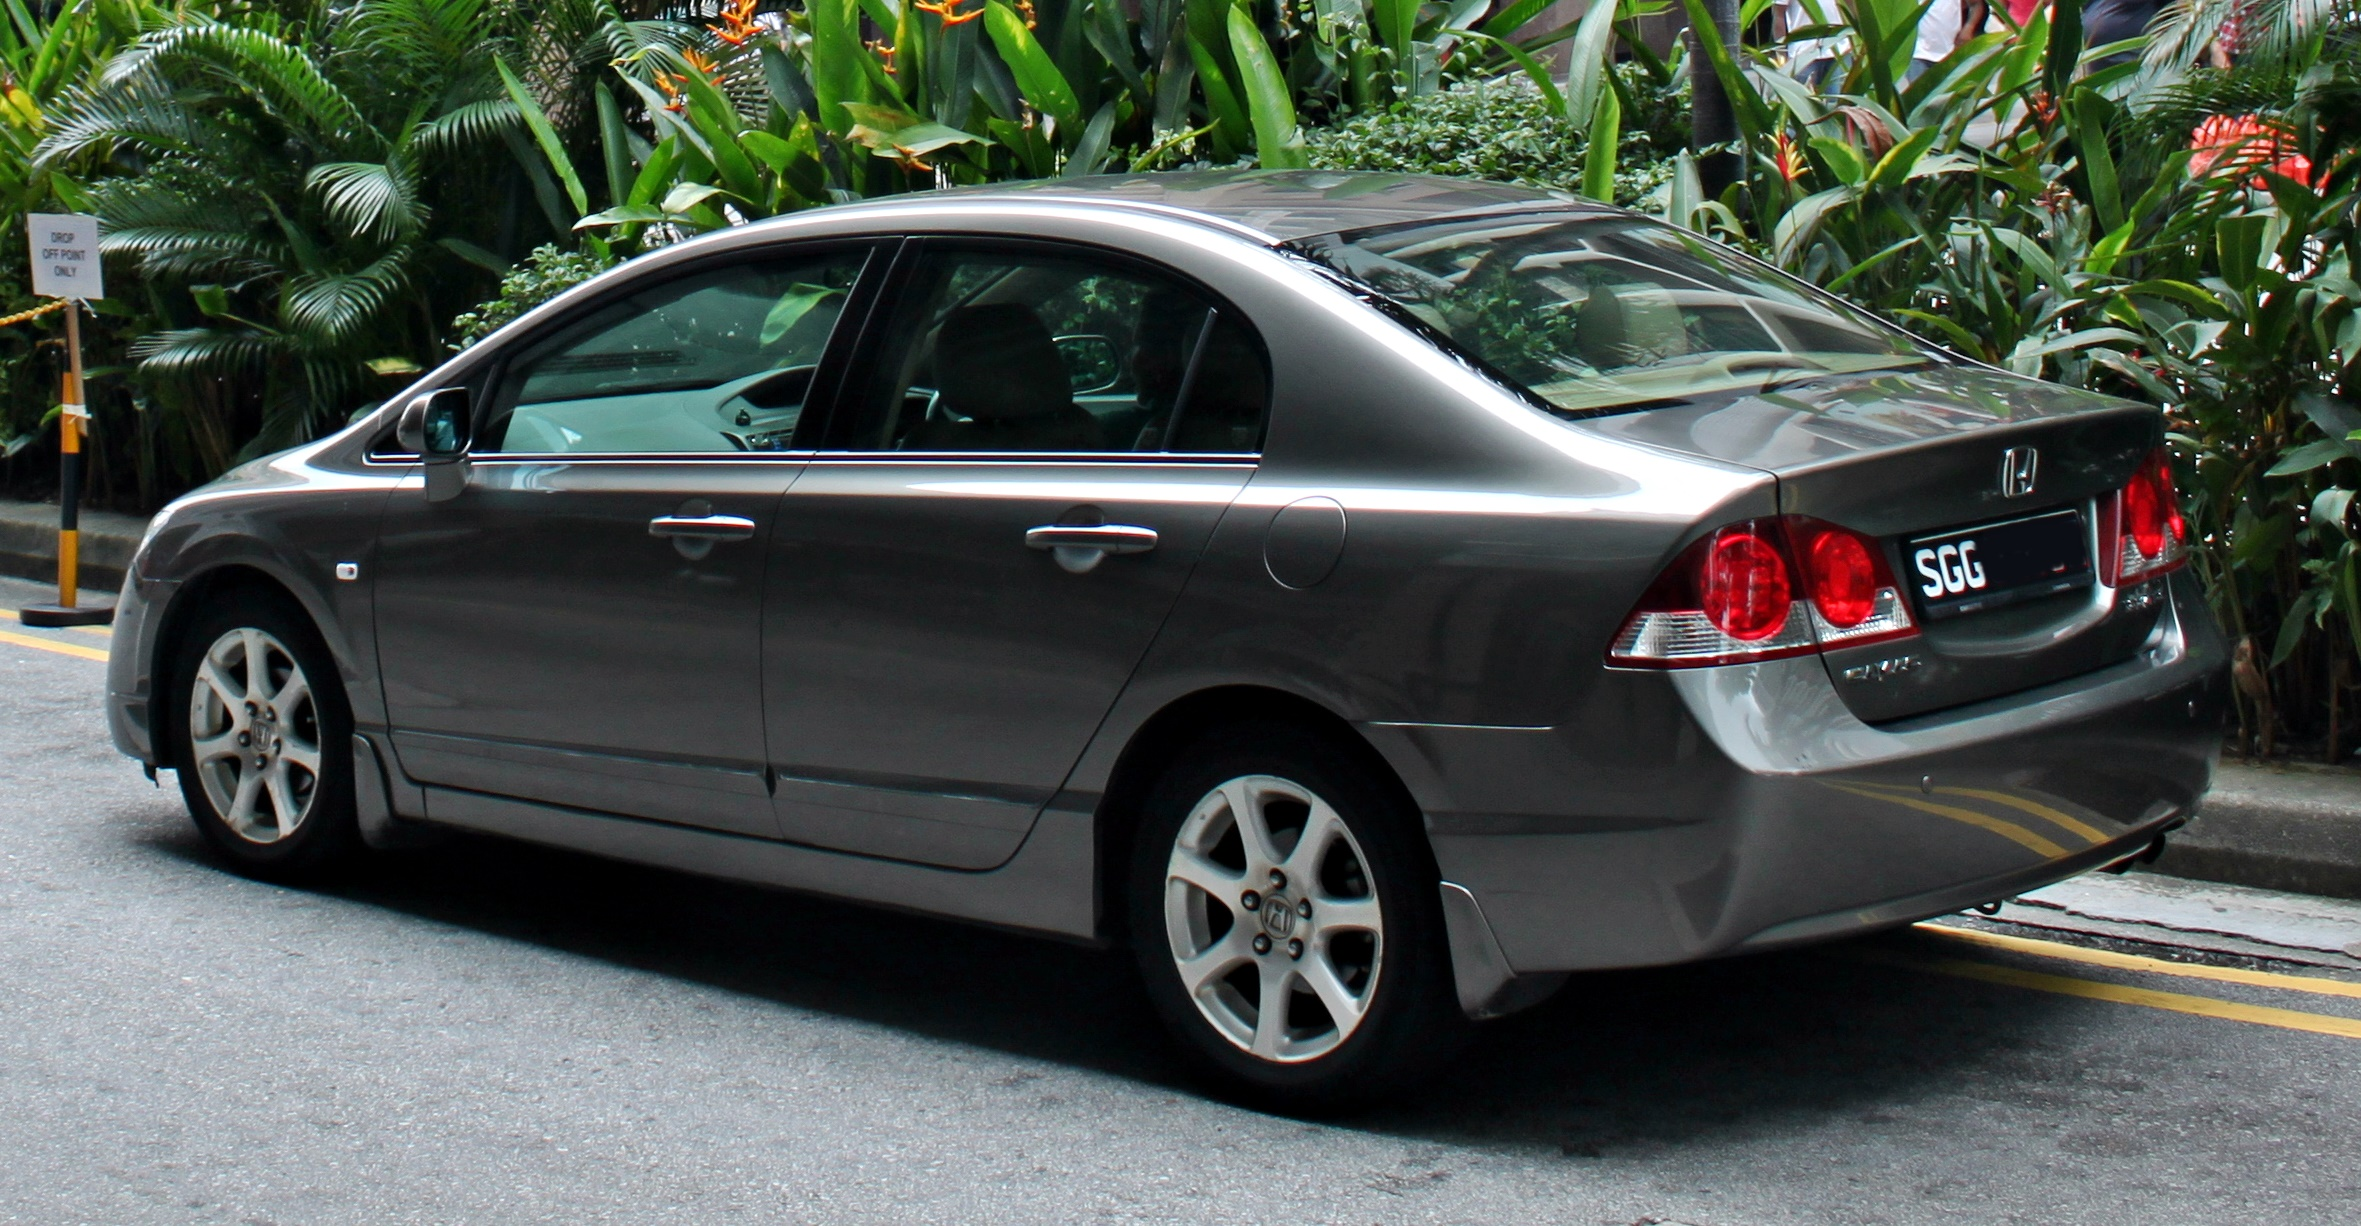 honda civic 2006 2012 prices in pakistan pictures and reviews pakwheels. Black Bedroom Furniture Sets. Home Design Ideas